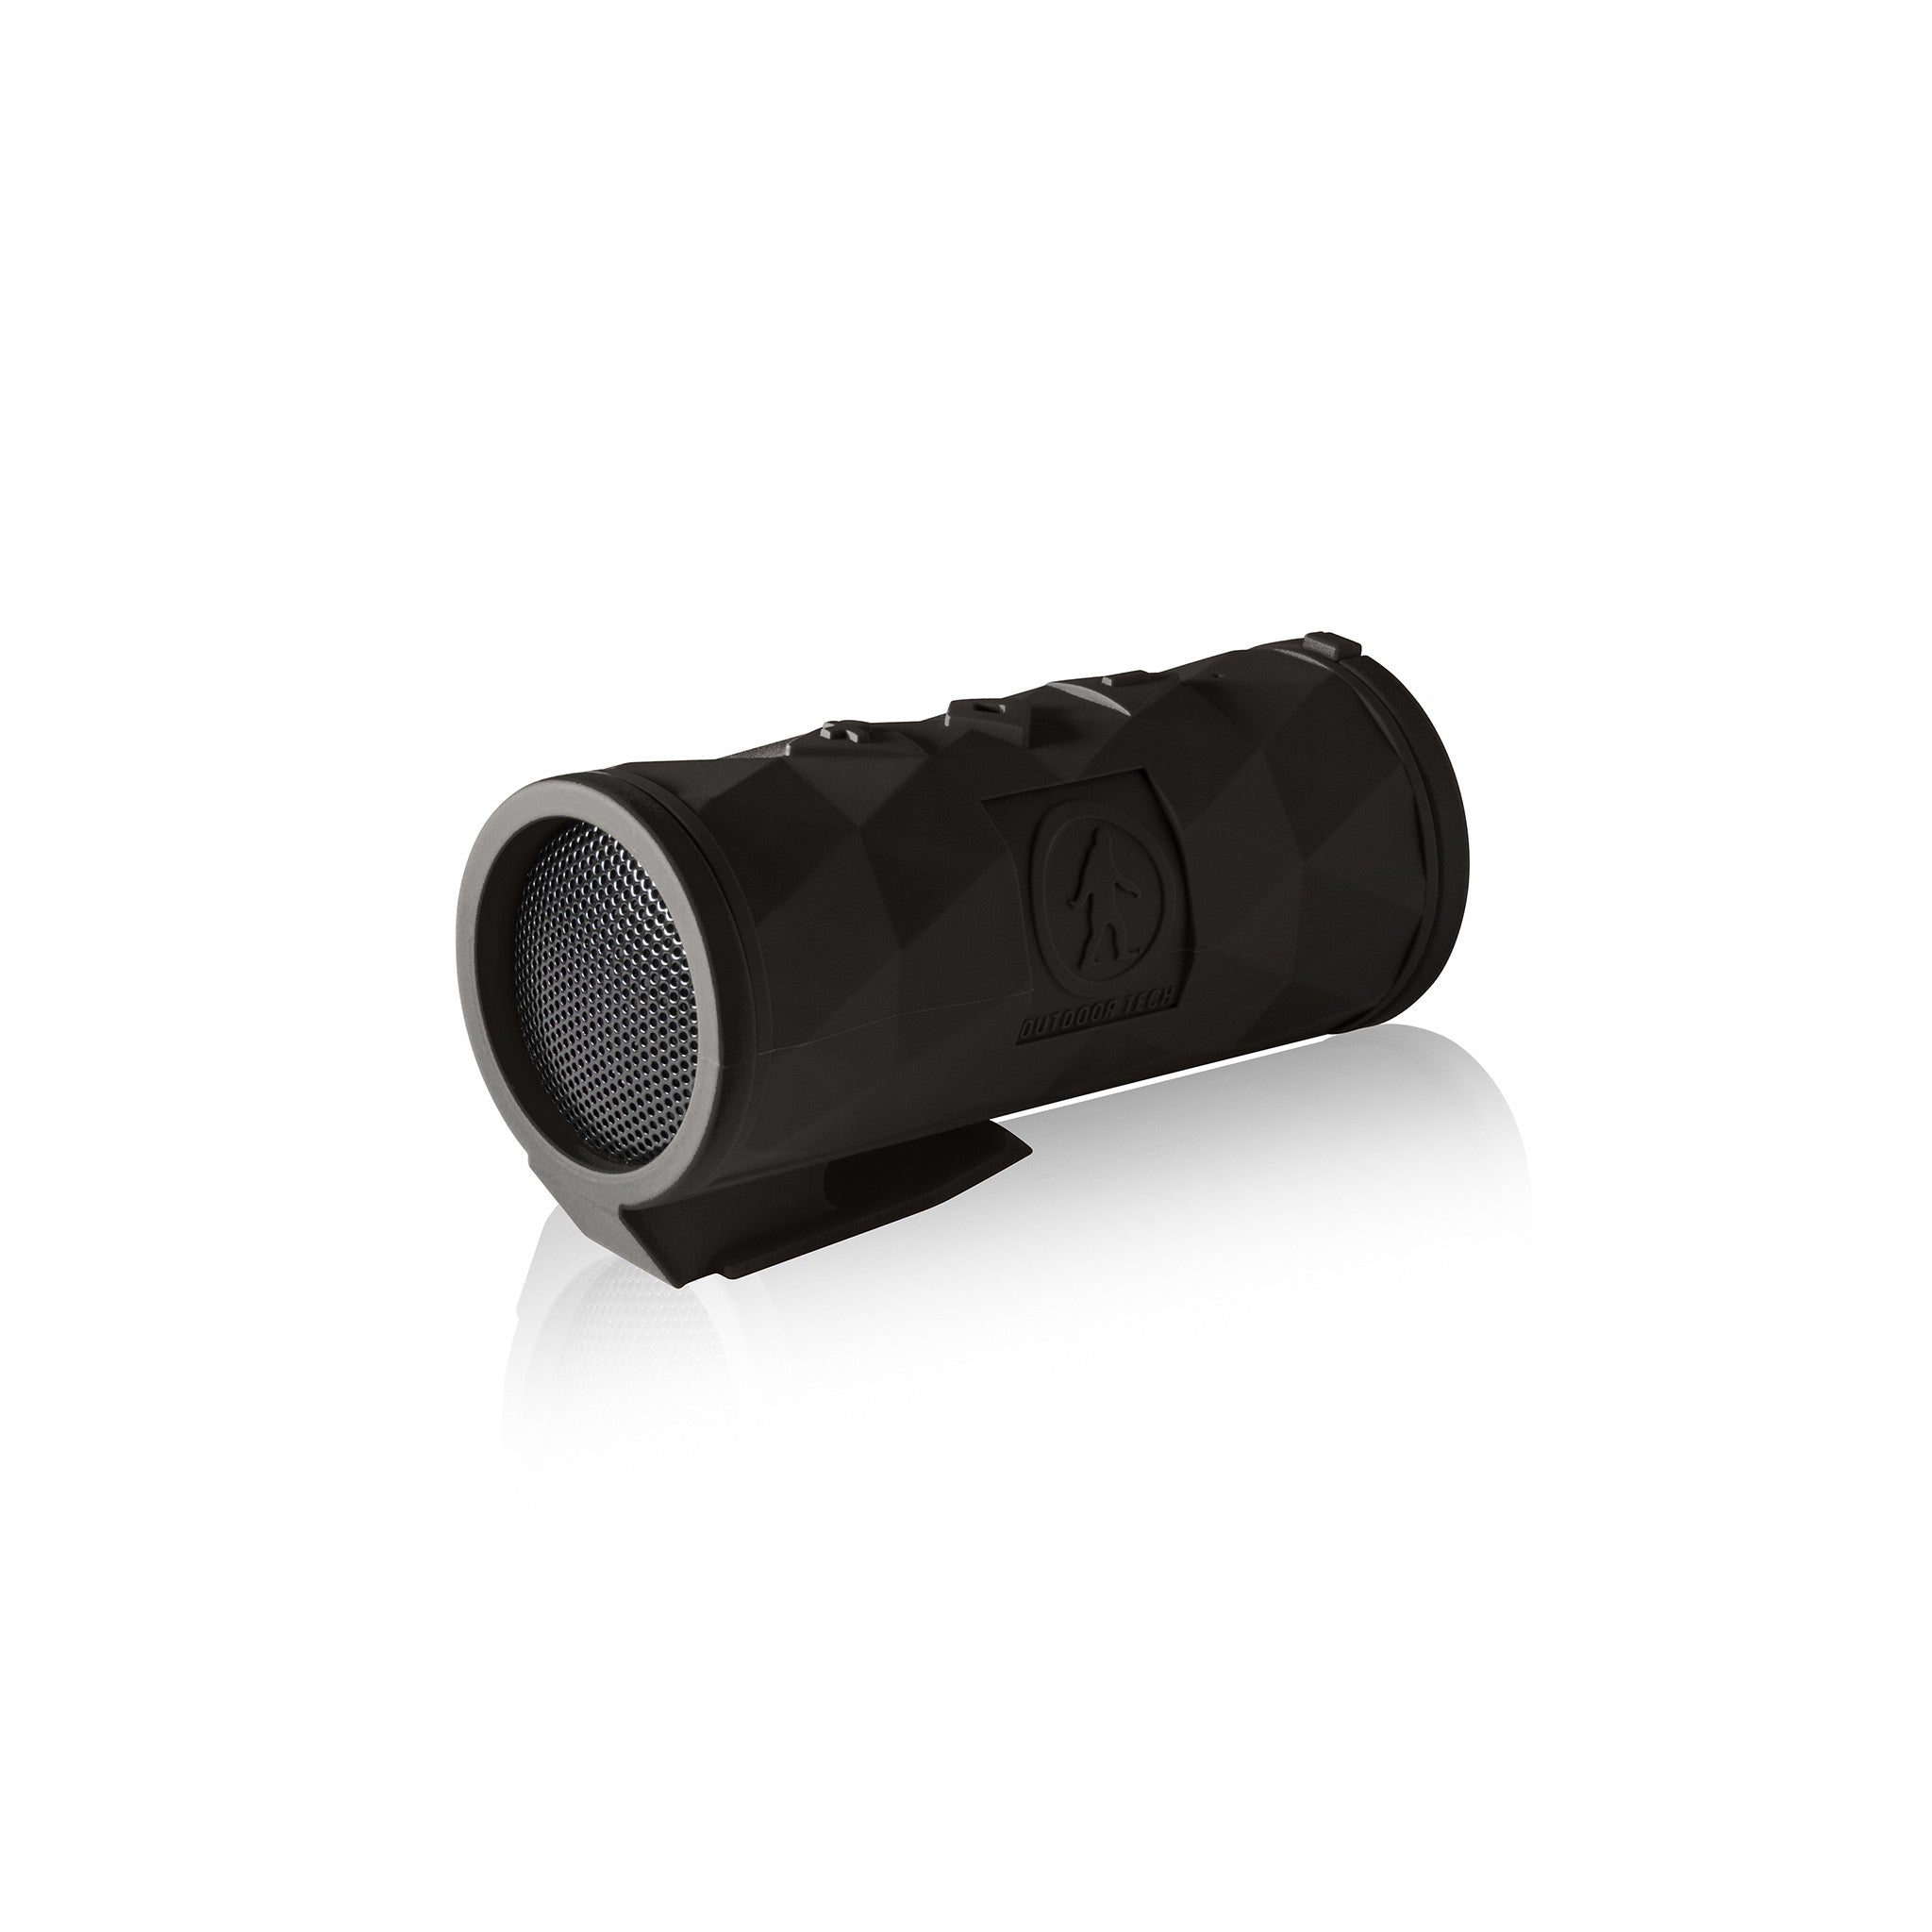 Image of Buckshot 2.0 - Small Bluetooth Speaker